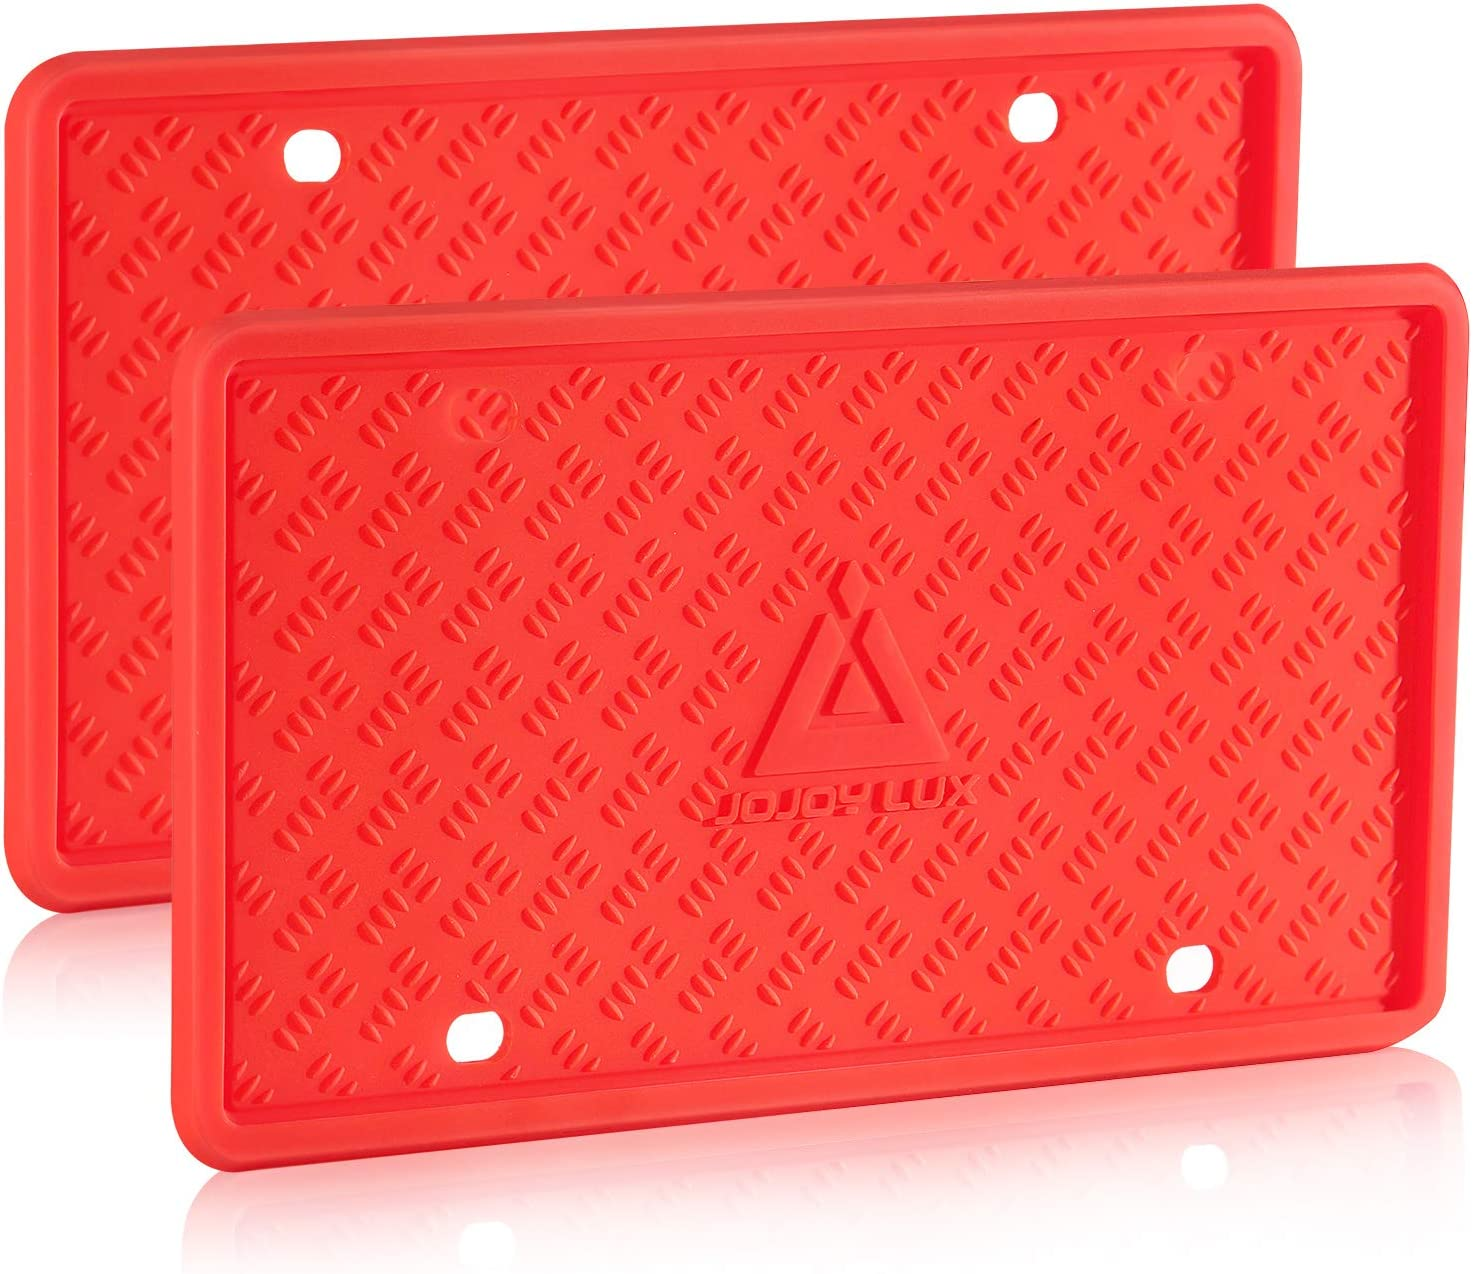 JOJOY LUX 2 Pack Silicone License Plate Frame, License Plate Holder, Universal American Auto Black License Plate Frame Rust-Proof, Rattle-Proof, Weather-Proof (RED)